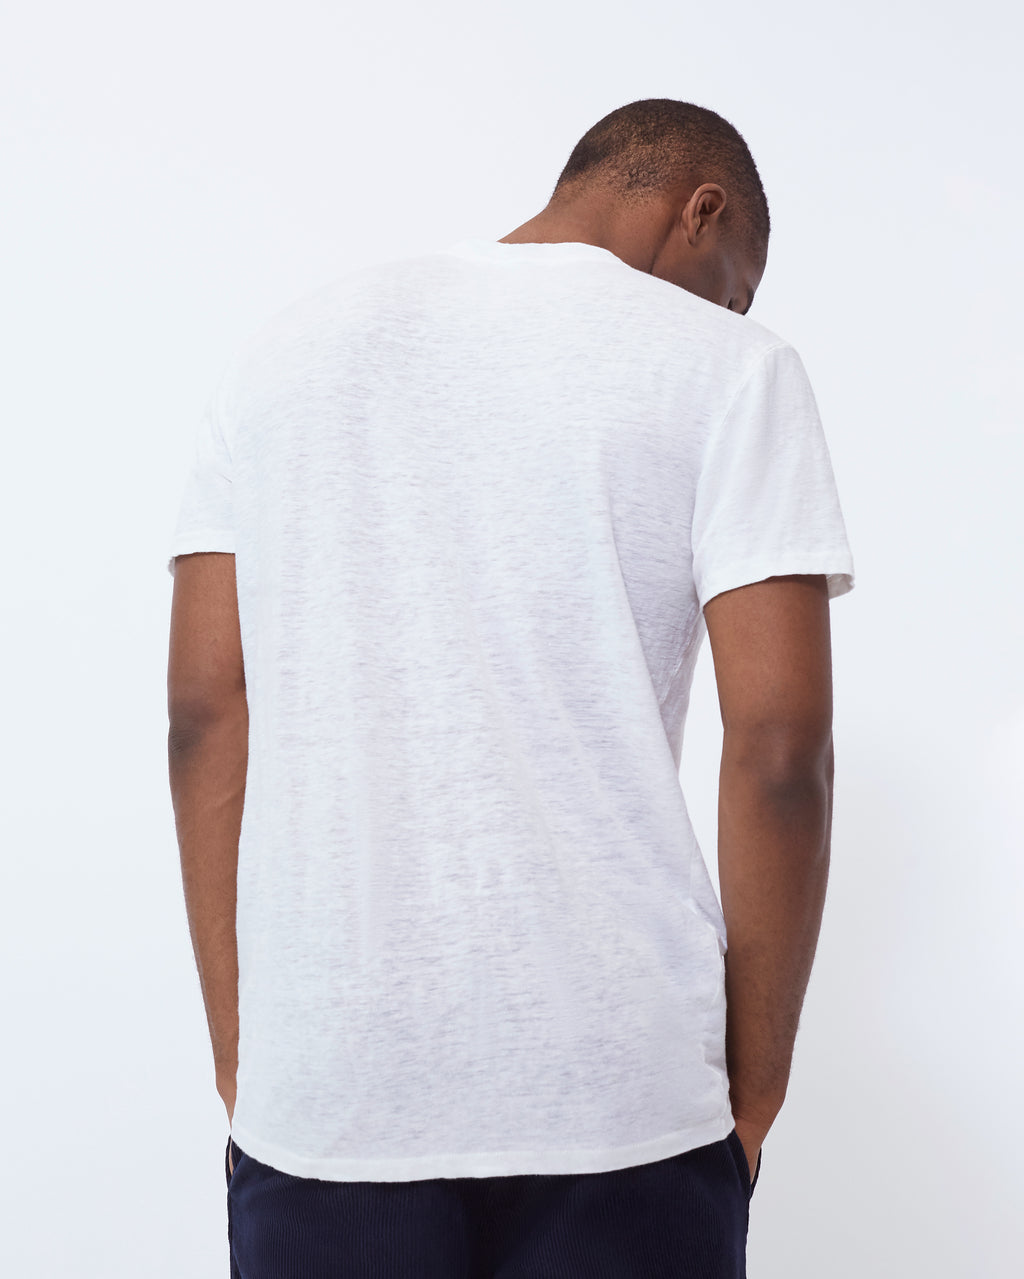 The Nolen Tee in Off White